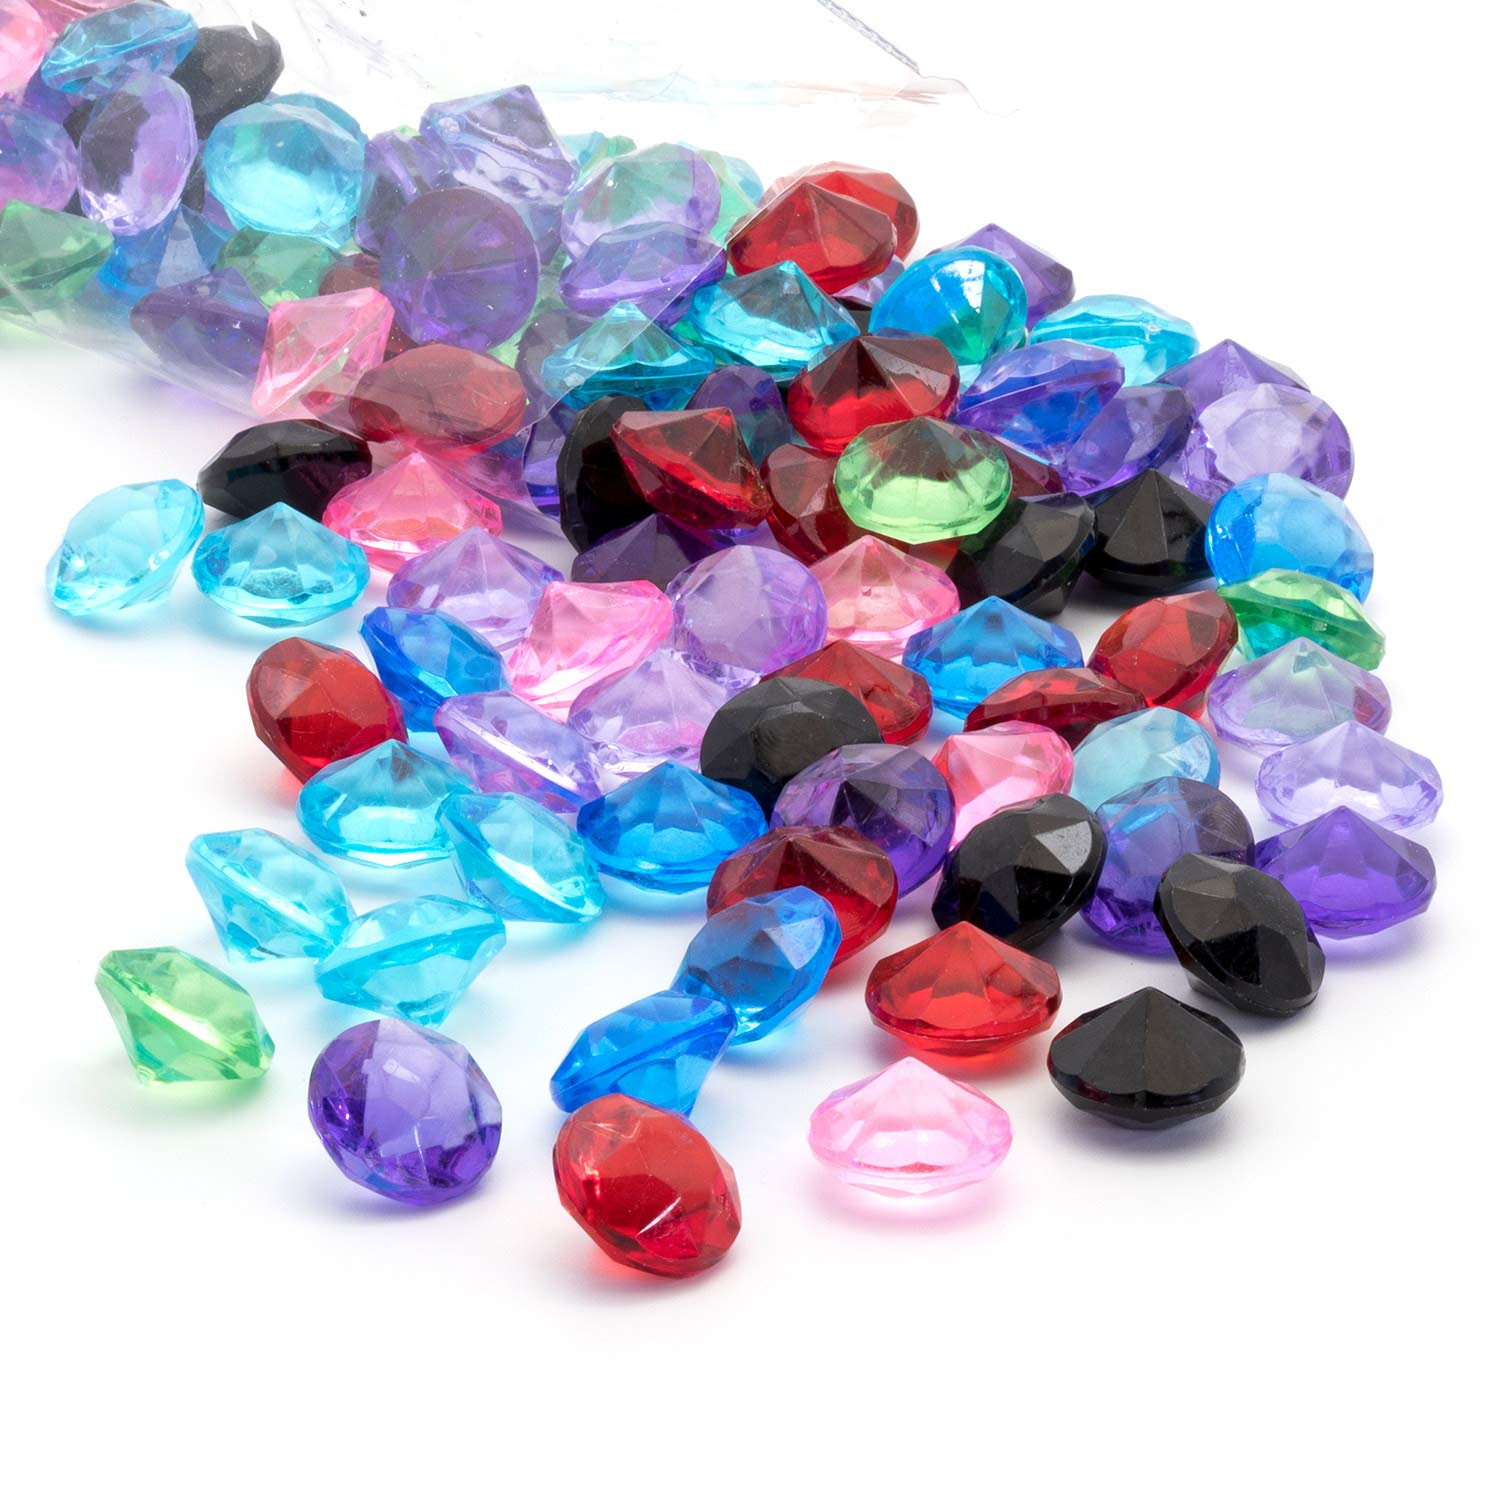 Acrylic Diamonds Gems Crystal Rocks for Vase Fillers, Party Table Scatter, Wedding, Photography, Party Decoration, Crafts by Royal Imports, 3 lbs (Approx 440-460 gems) - Mixed Colors